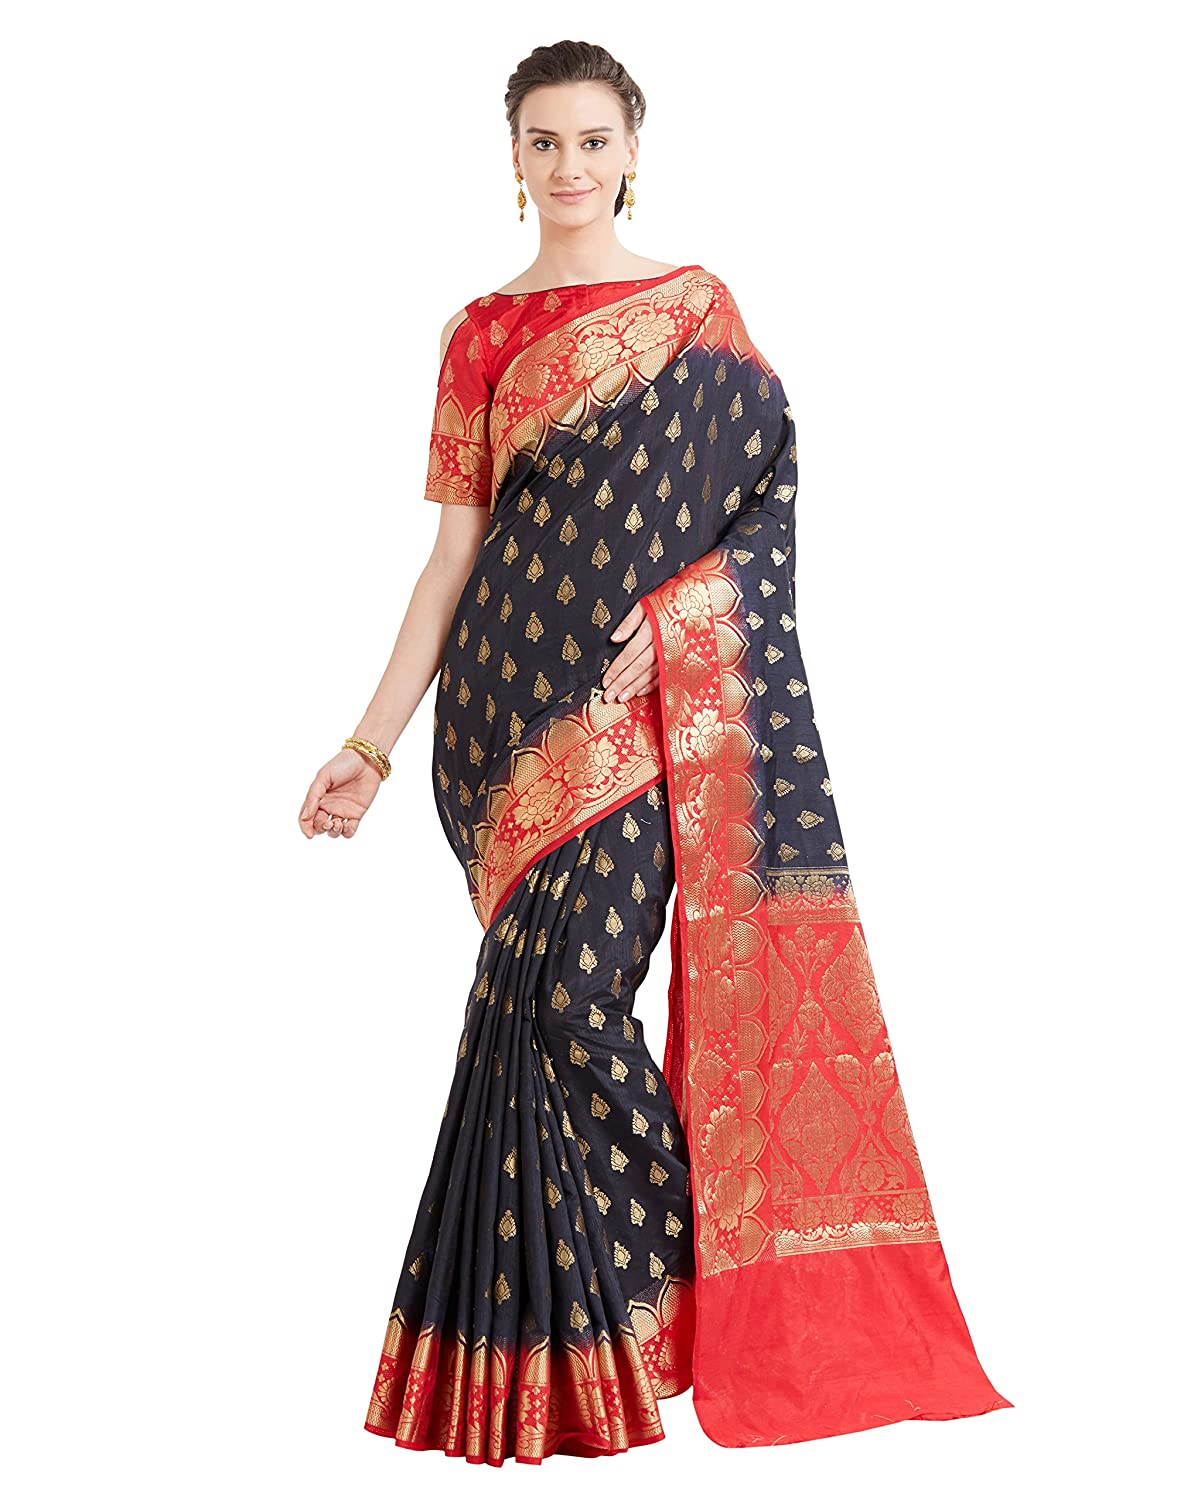 625989f0 Saree Color :- *Black* , Blouse Color :- *Red* Saree Fabric :- *Banarasi  Art Silk ( Two Tone Silk)* , Blouse Fabric :- *Banarasi Art Silk *